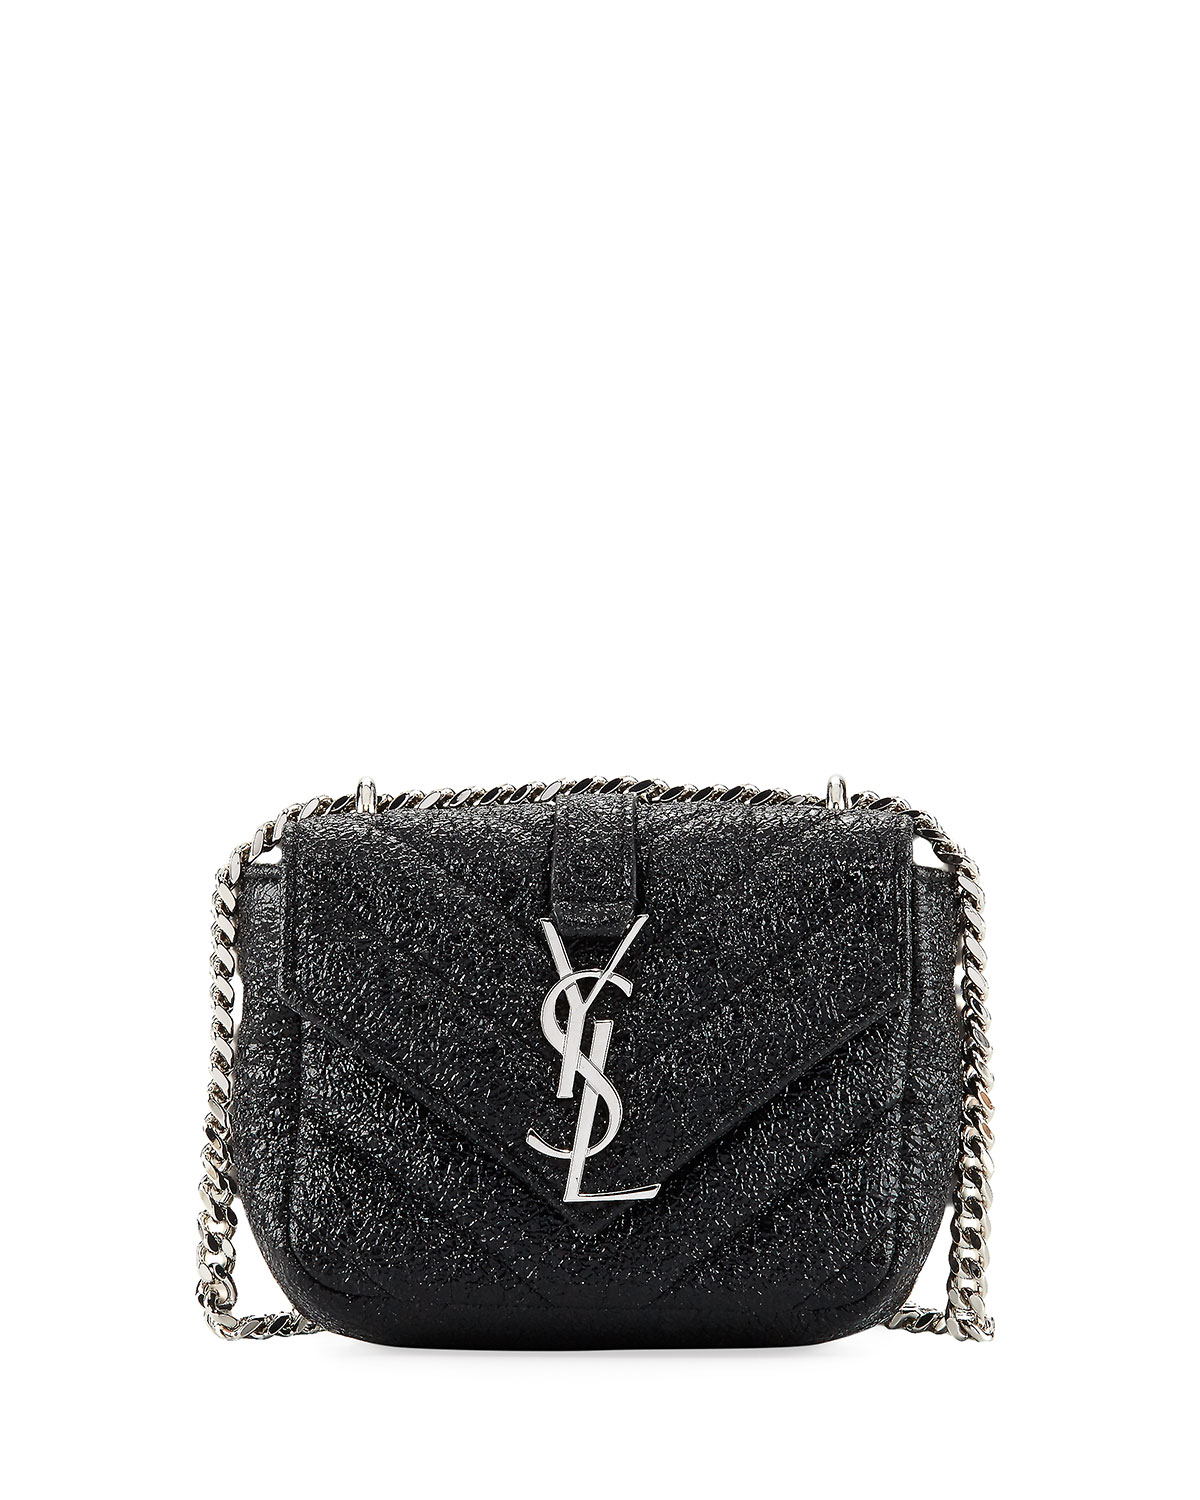 Saint Laurent Monogram Micro Metallic Quilted Crossbody Bag Black